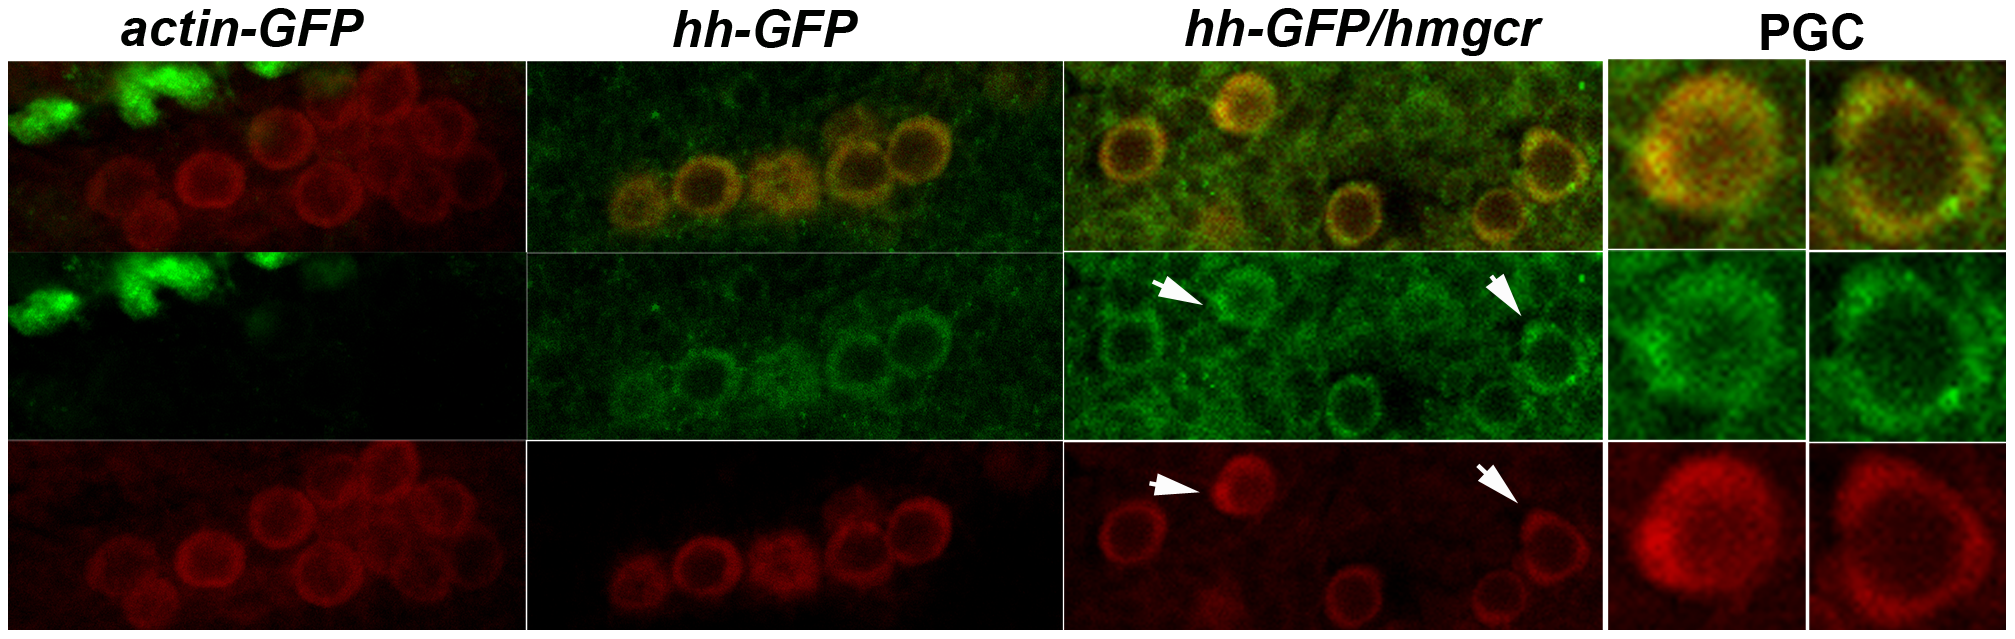 Ectopically expressed Hh-GFP localizes near PGCs.